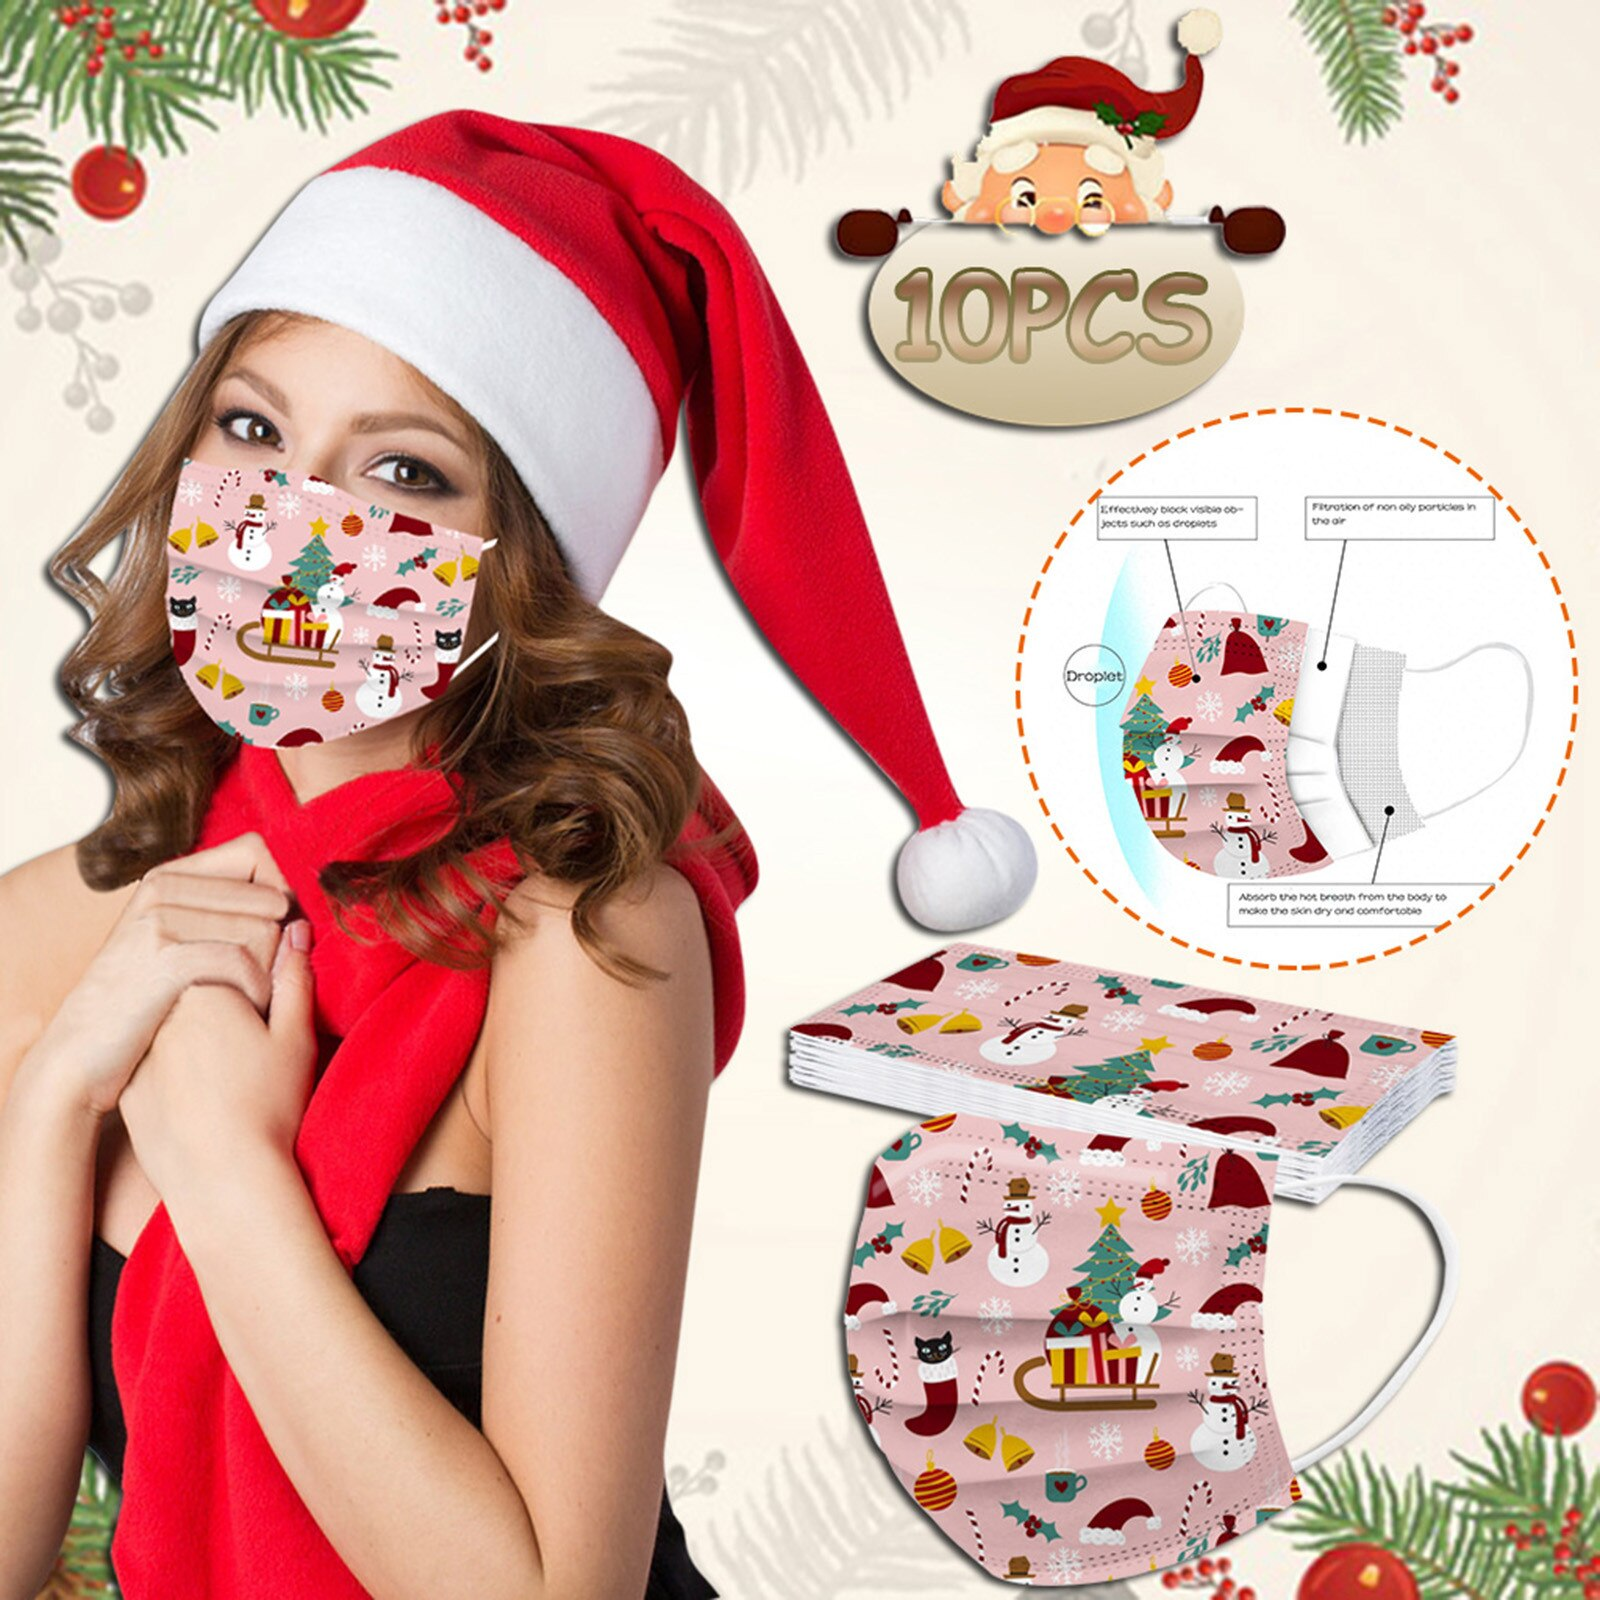 Mascarilla 10pcs Adult Woman Mask Disposable Christmas Face Mask Fashion Cartoon 3ply Earloop Mouth Caps Disposable Navidad